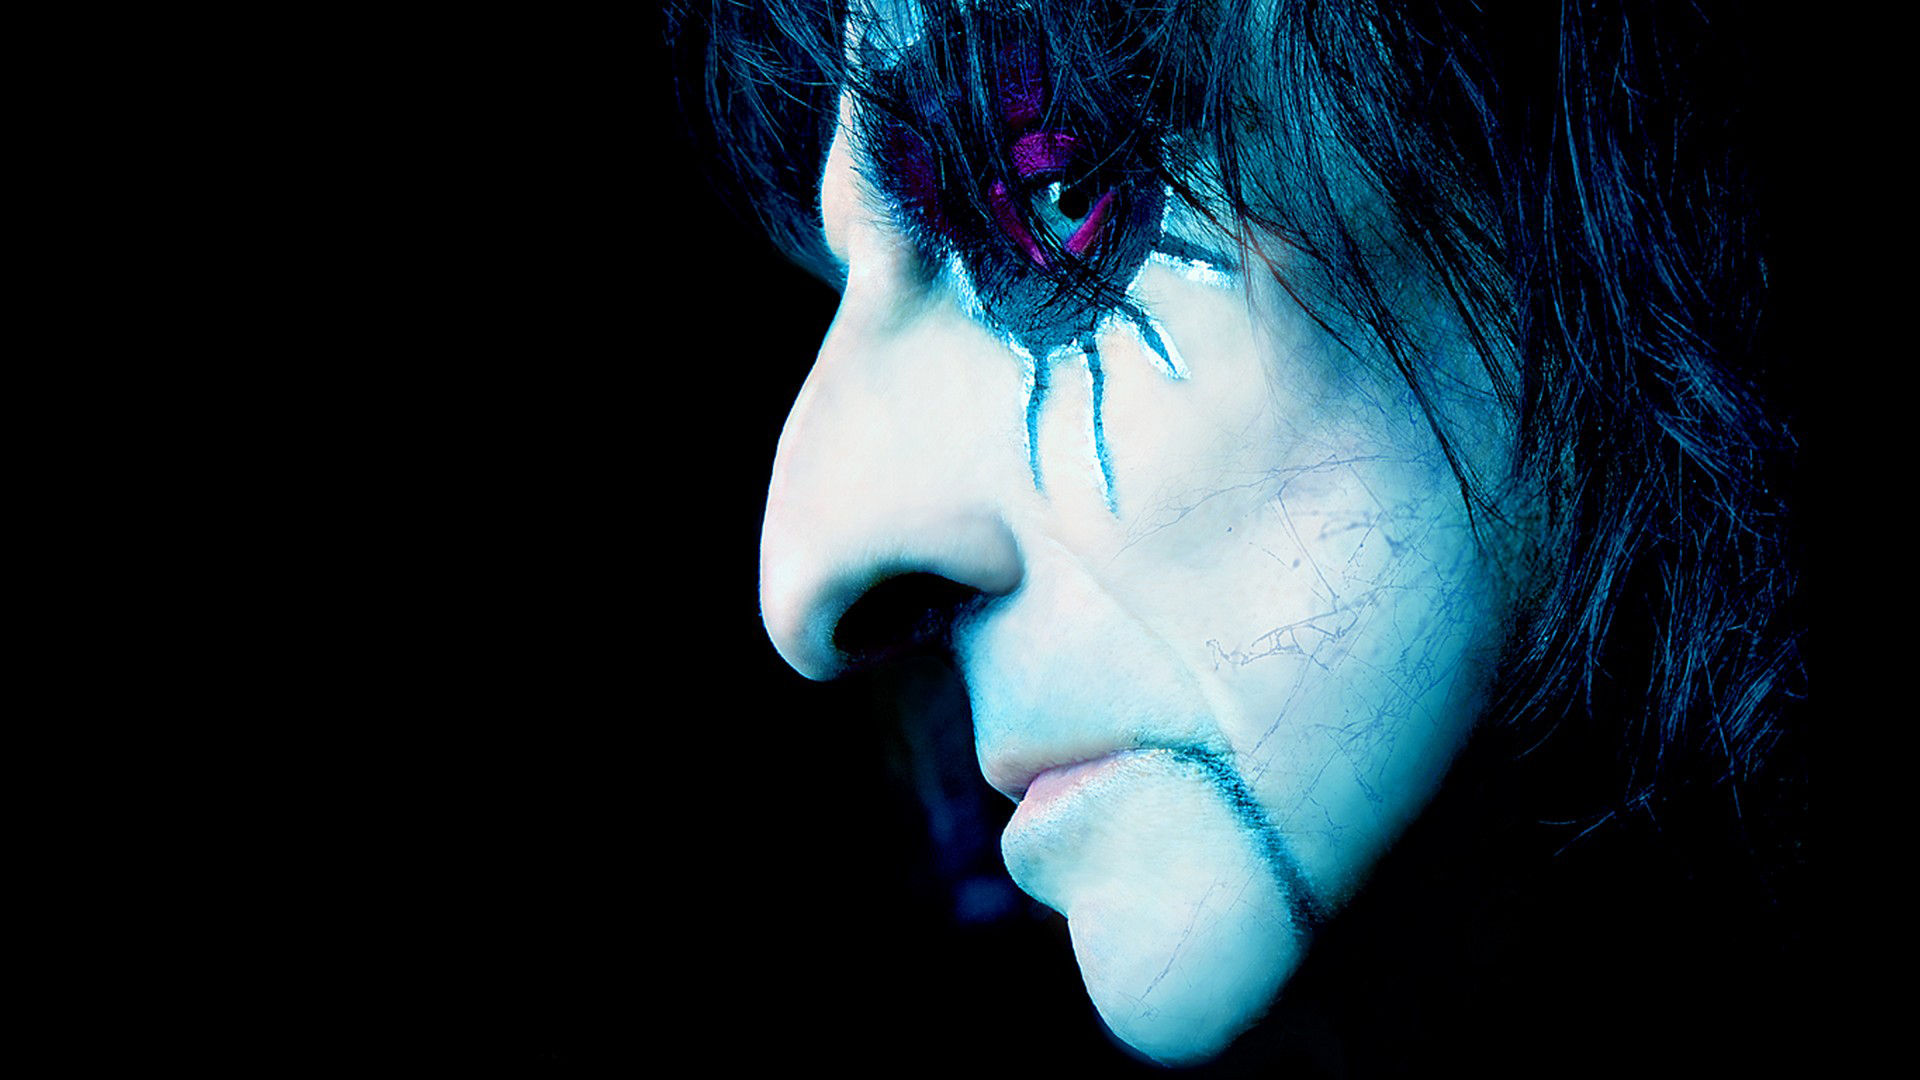 HD Alice Cooper Wallpapers Download Free